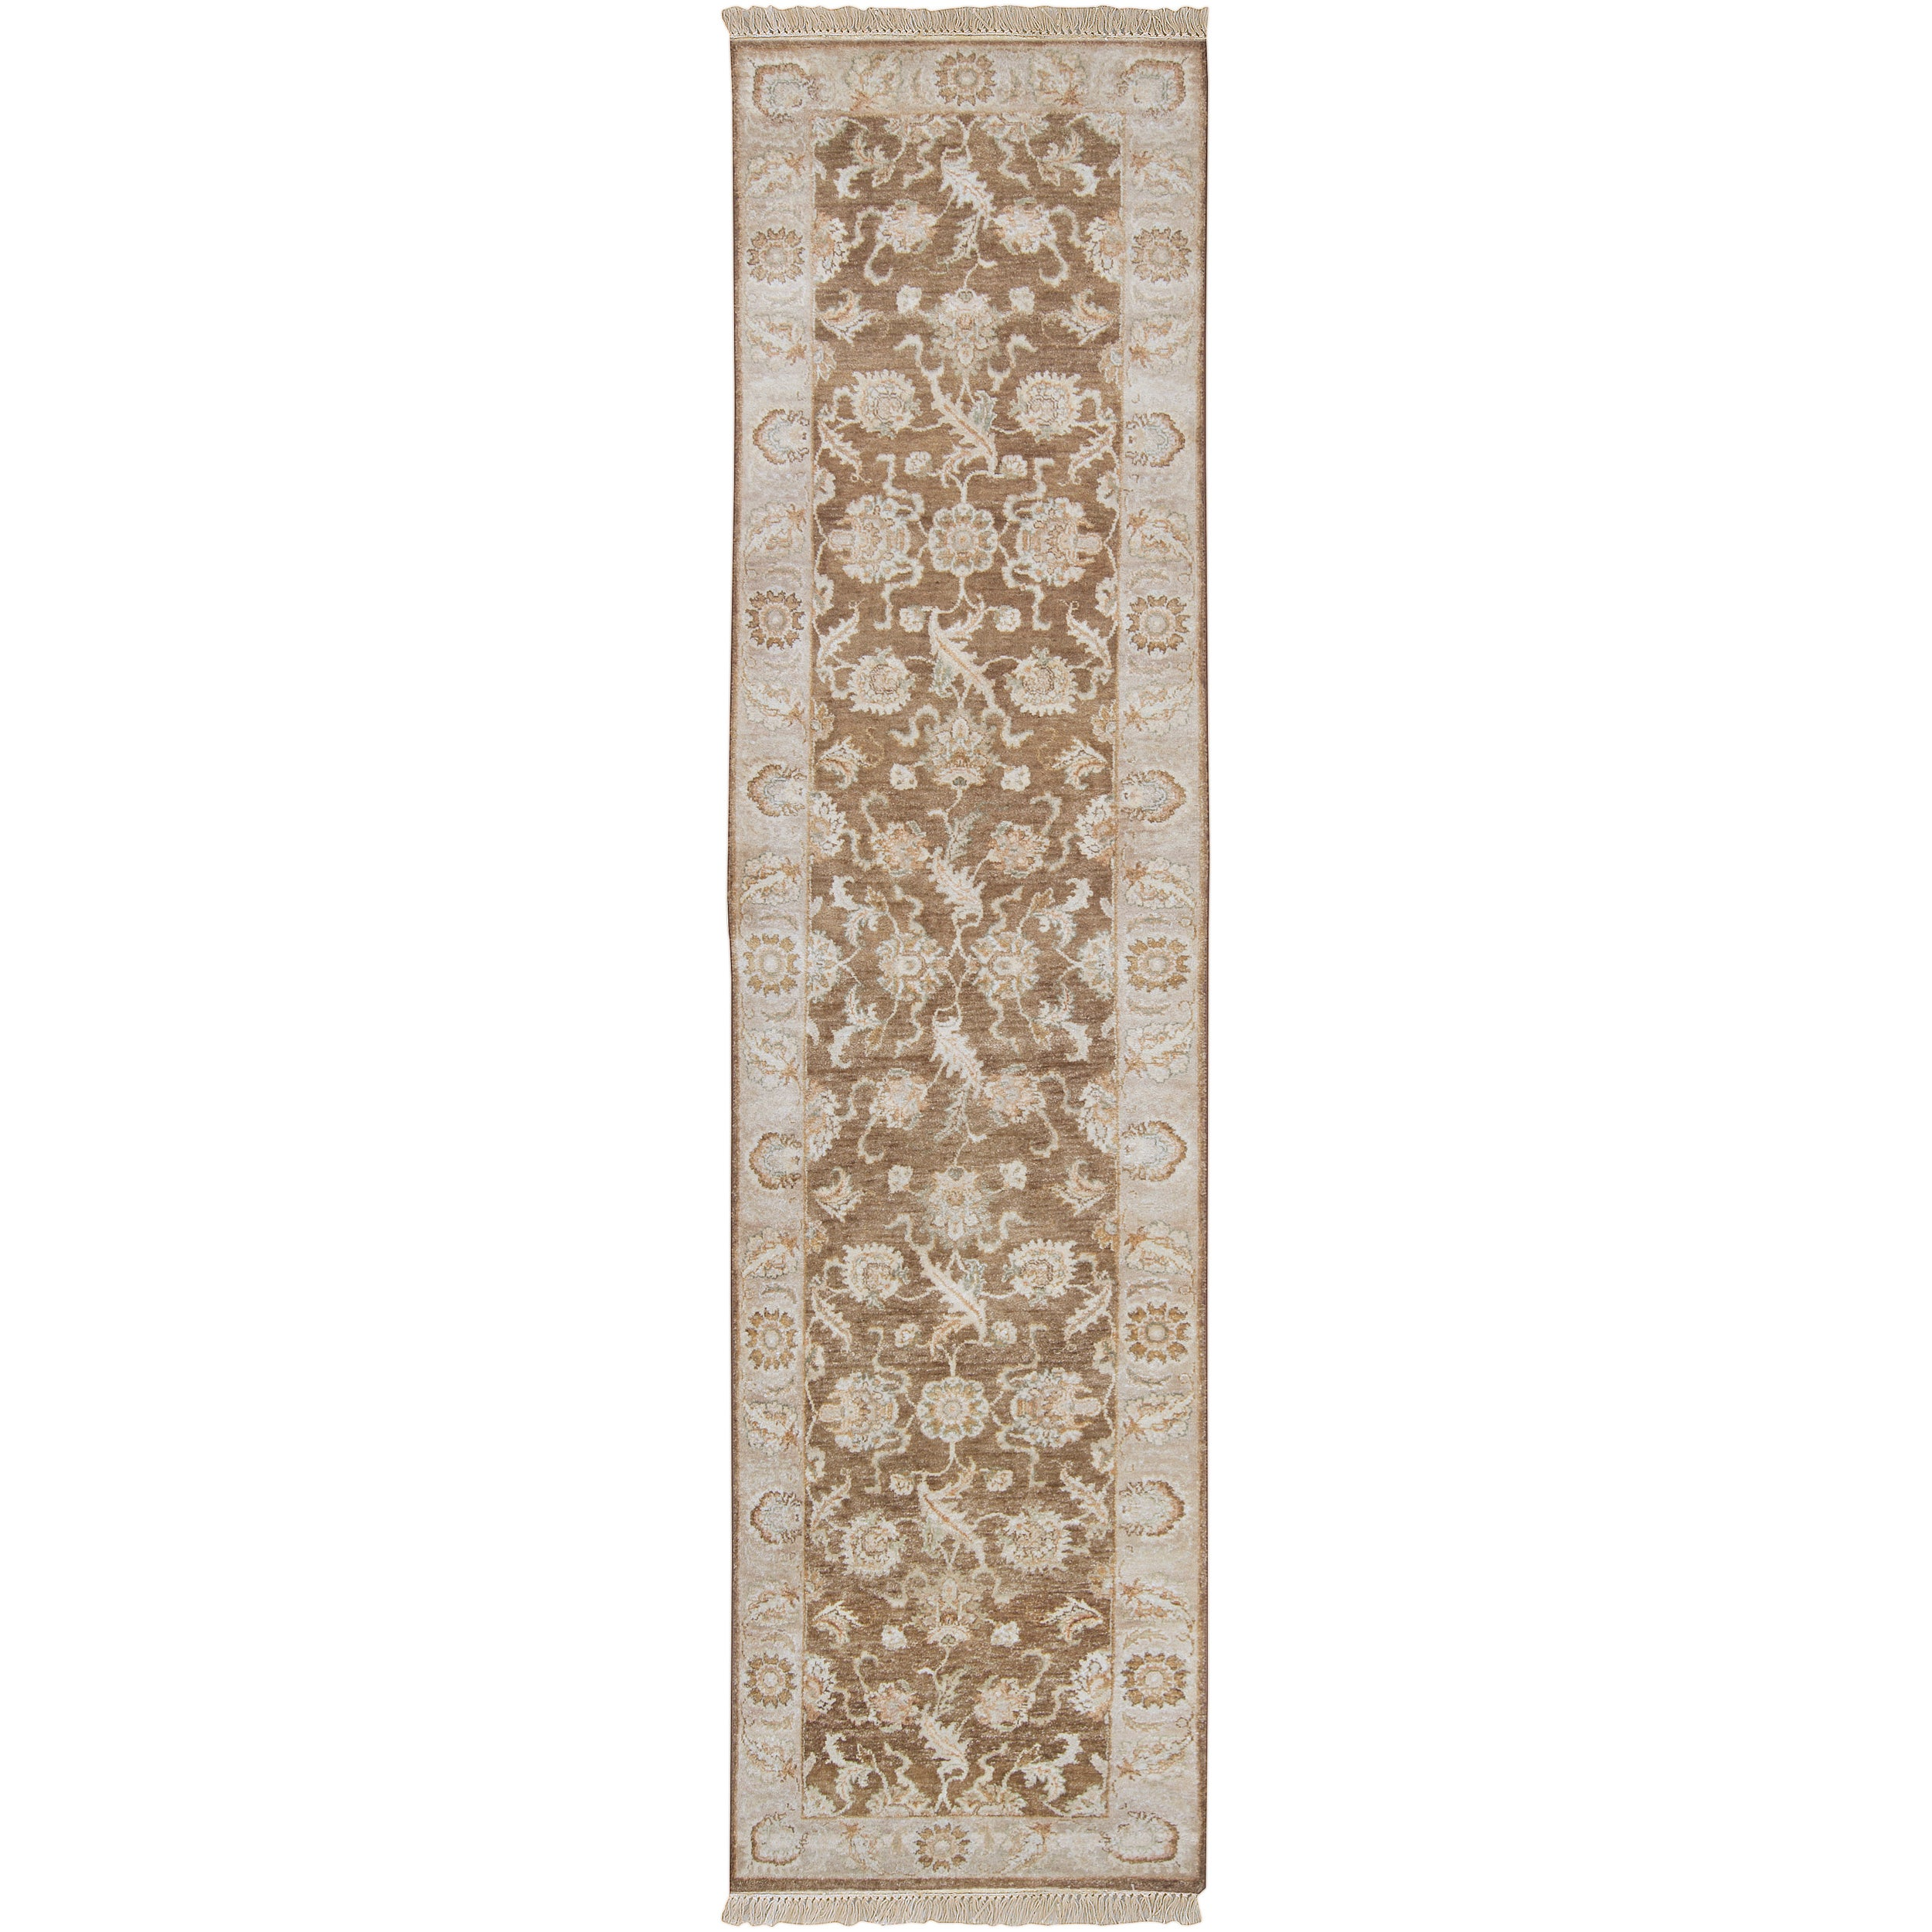 Hand-knotted Brown Main Ave New Zealand Wool Rug (2'6 x 10')